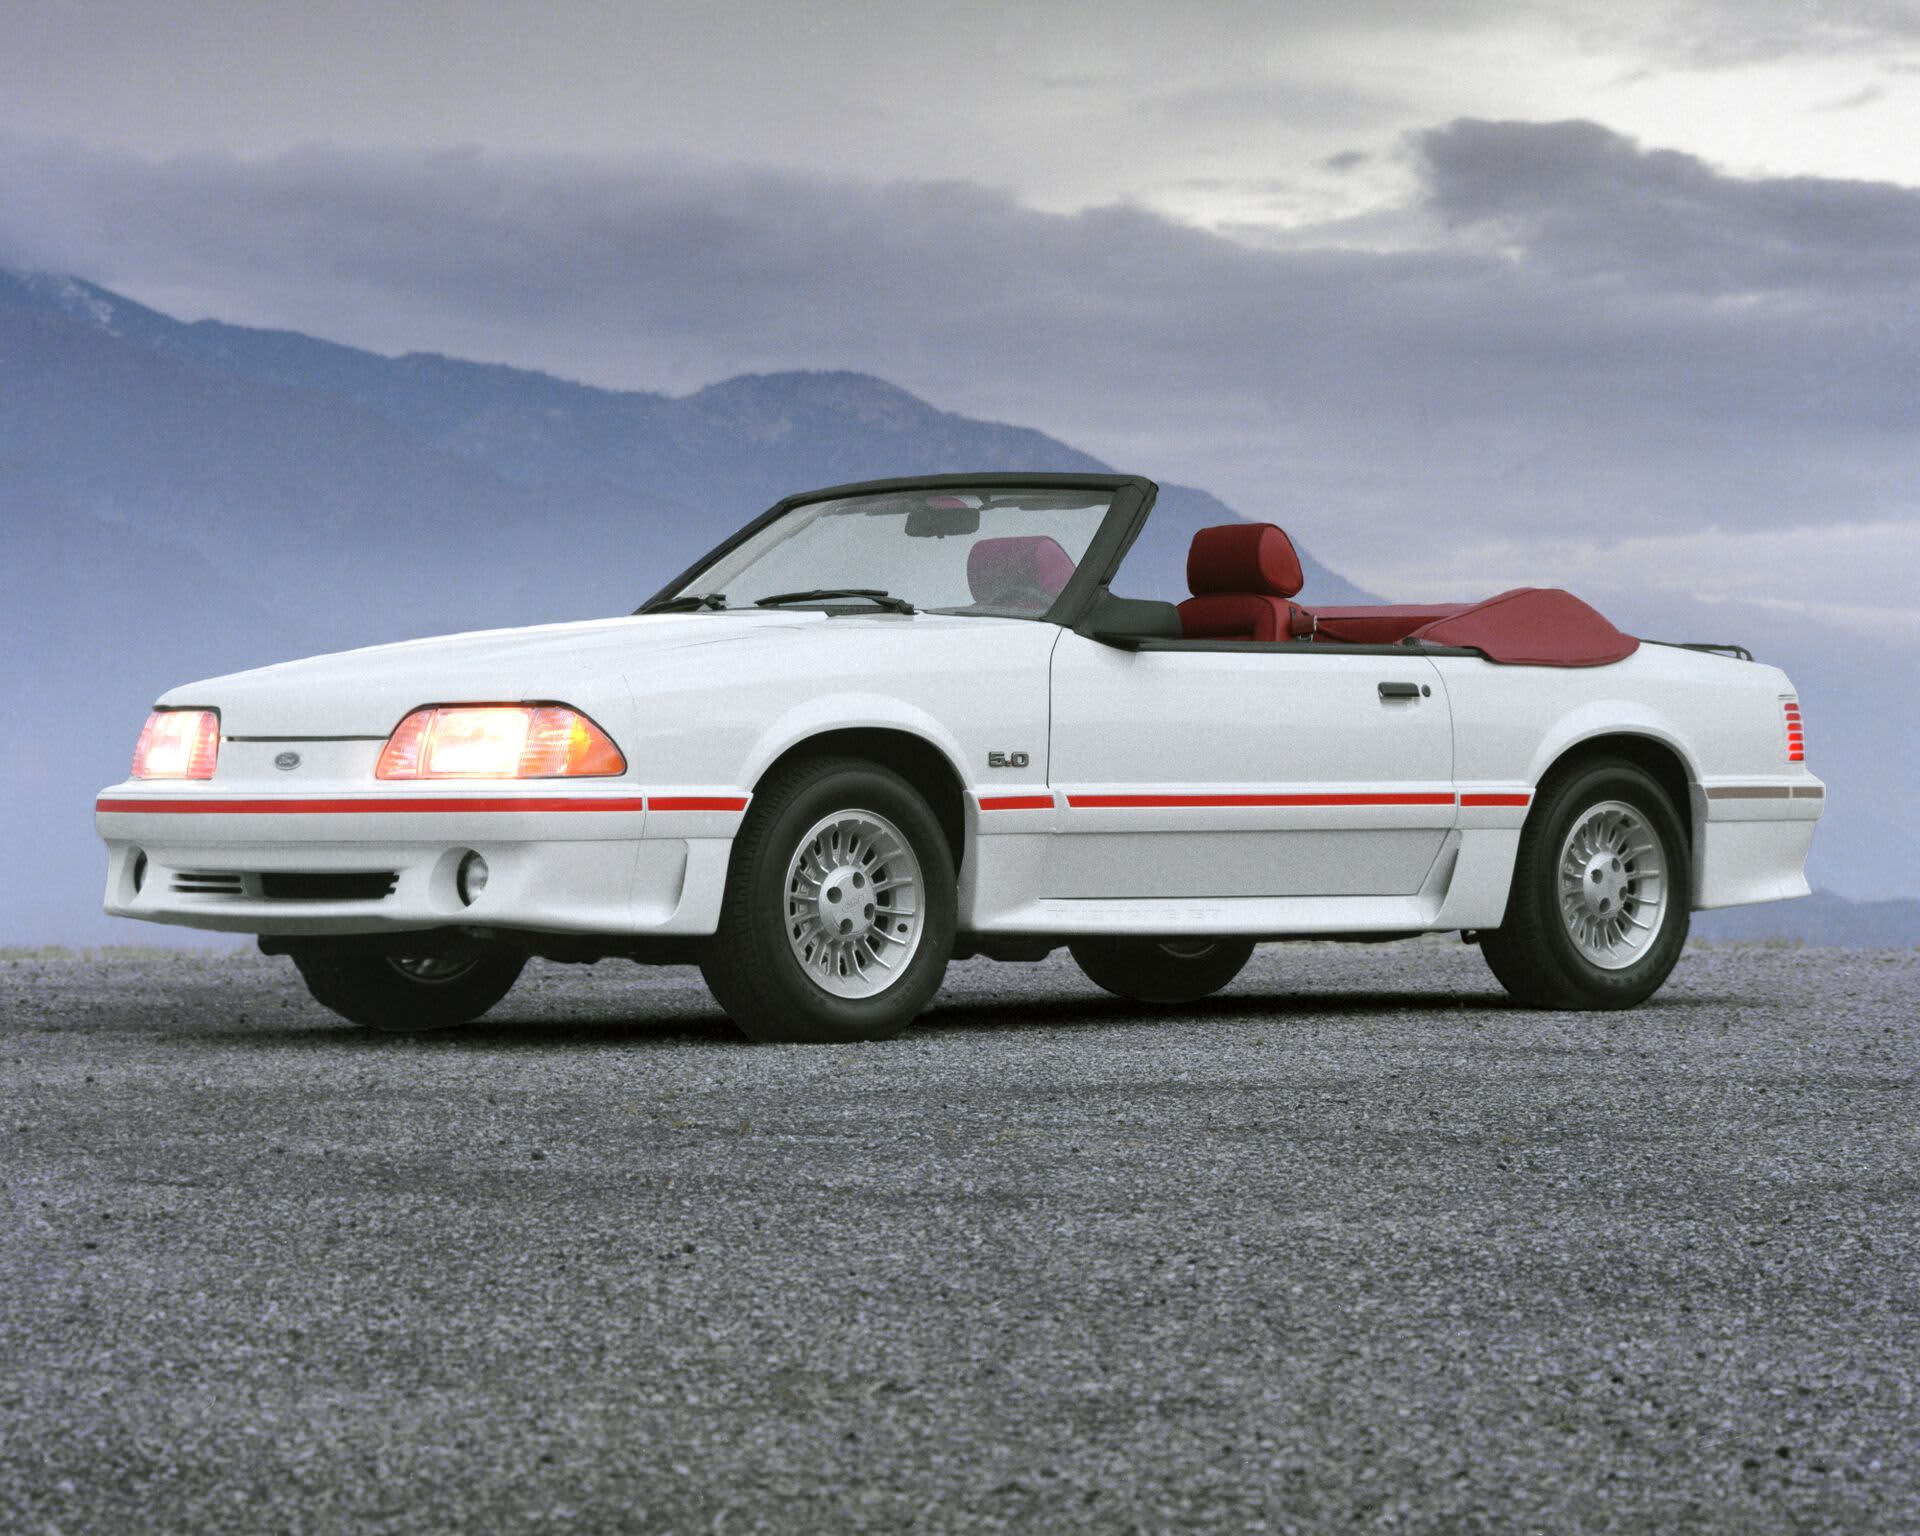 Ford Has Made 10 Million Mustangs A History Of The Iconic Sports Car 1964 Mustang Gt Convertible